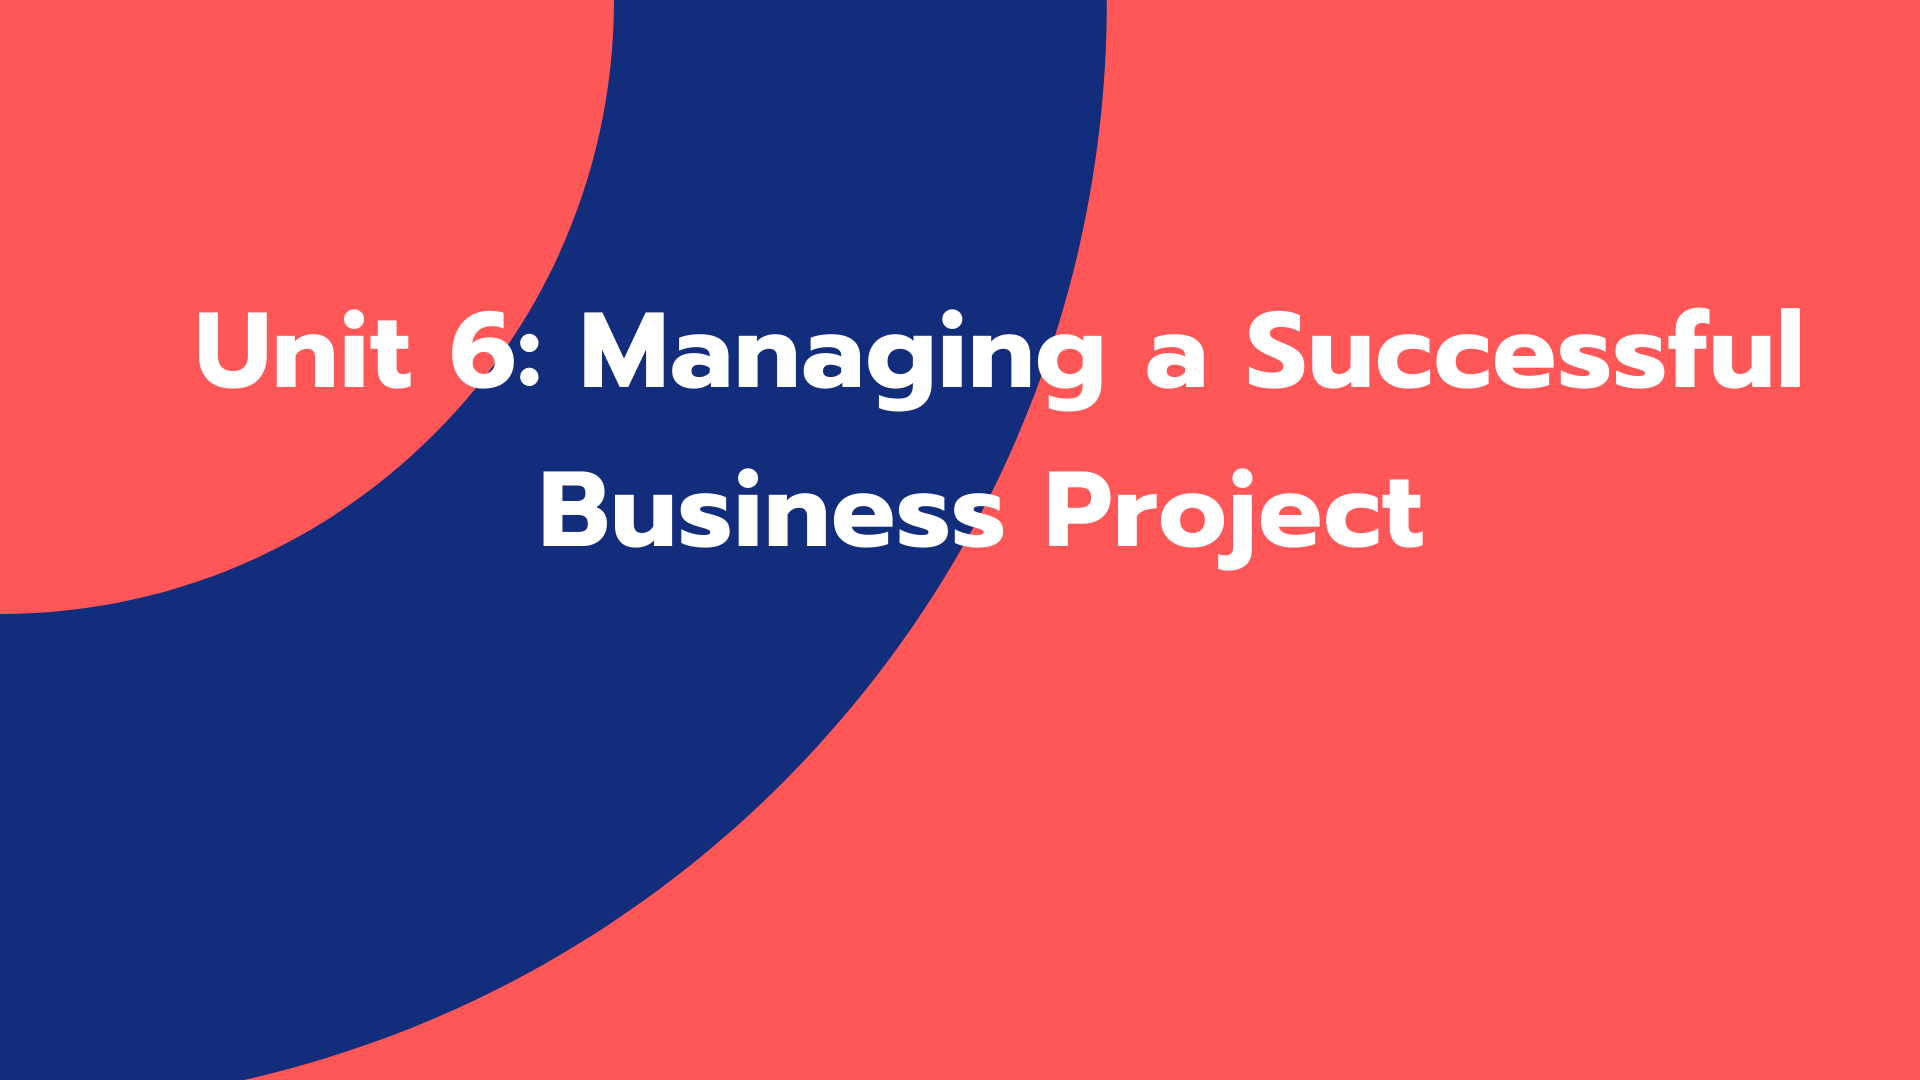 Unit 6: Managing a Successful Business Project